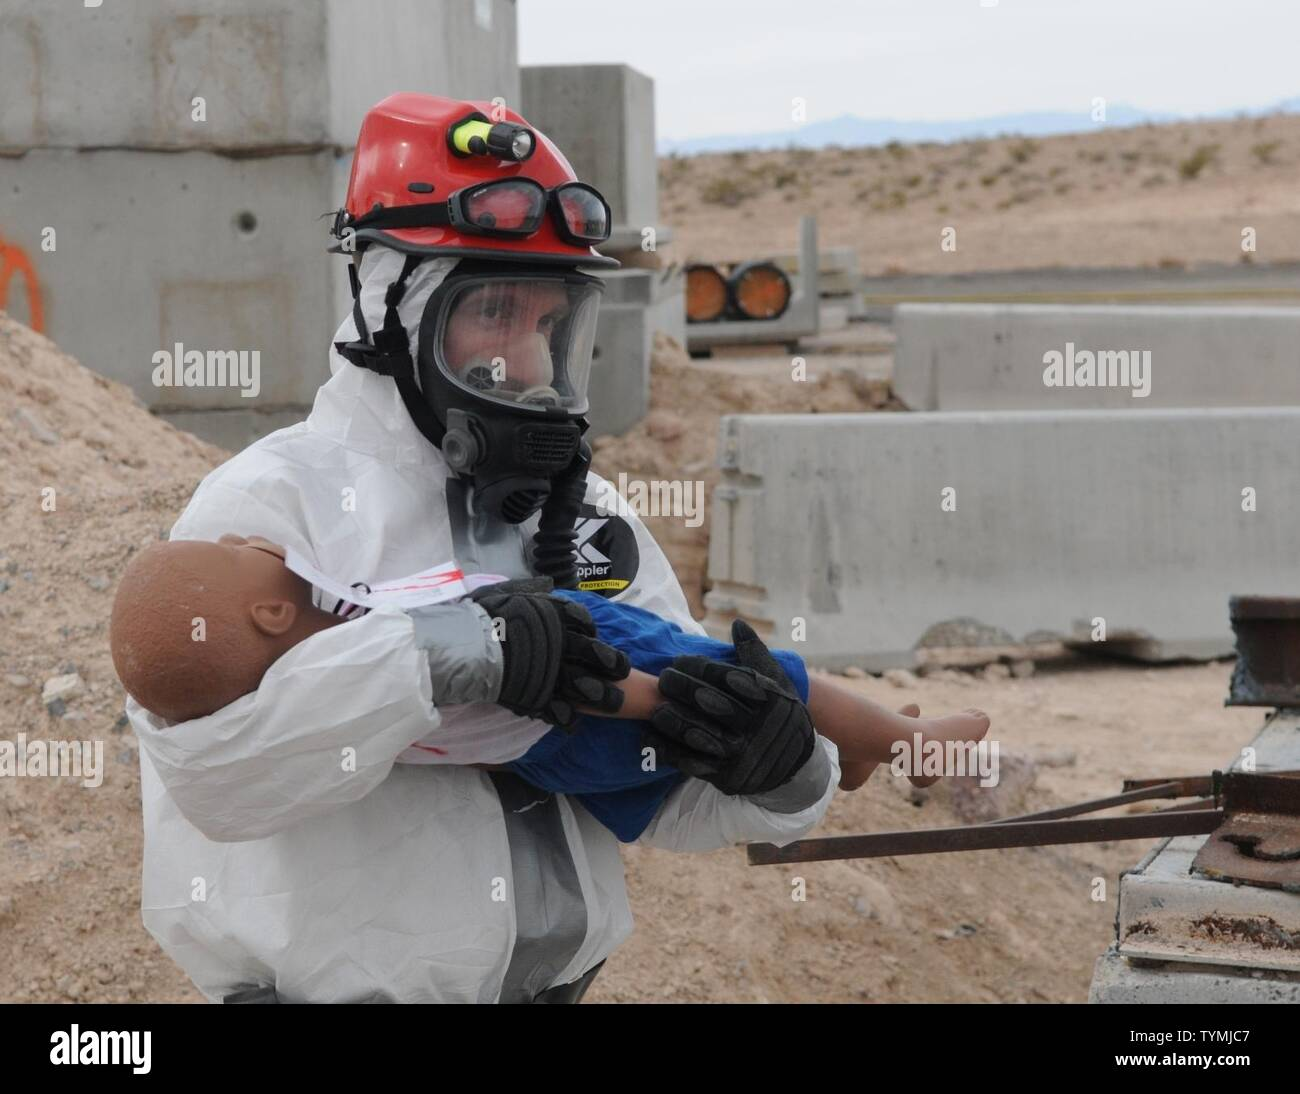 Nevada Army Guard Spc. Benjamin Vance, of the Nevada National Guard's CERFP (Chemical, Biological, Radiological, Nuclear and Explosive Enhanced Response Force Package) trains for disaster response relief on Nov. 16 during Vigilant Guard 2017 in North Las Vegas. VG 17 was the first of four joint operational disaster readiness exercises this year hosted by U.S. Northern Command. Last week's exercise involved multiple local, federal and state agencies including the city of North Las Vegas, the Nevada and California national guards and the Nevada Division of Emergency Management. Stock Photo